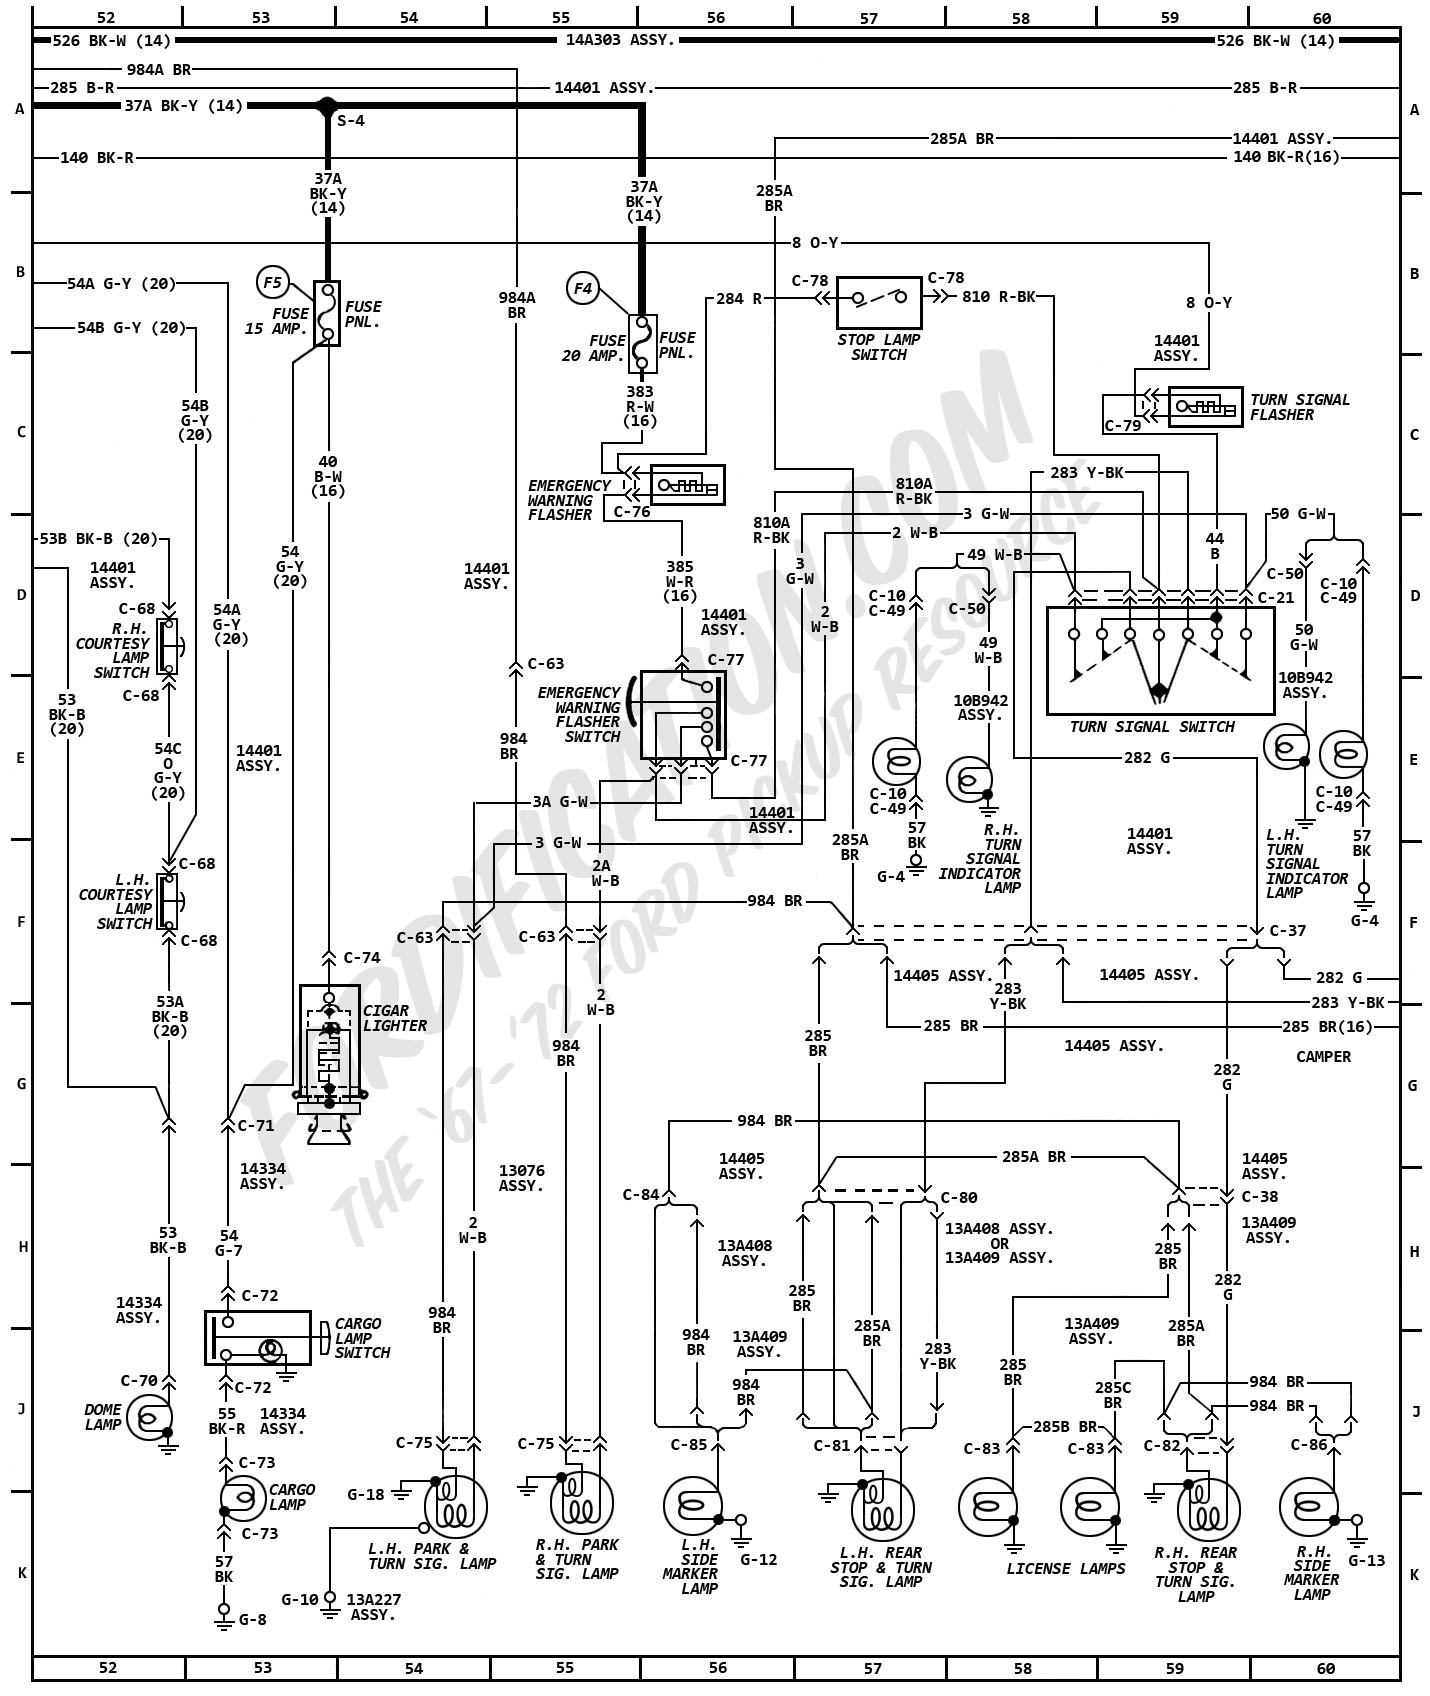 1972MasterWiring_06 1972 ford truck wiring diagrams fordification com fordification wiring diagram at virtualis.co